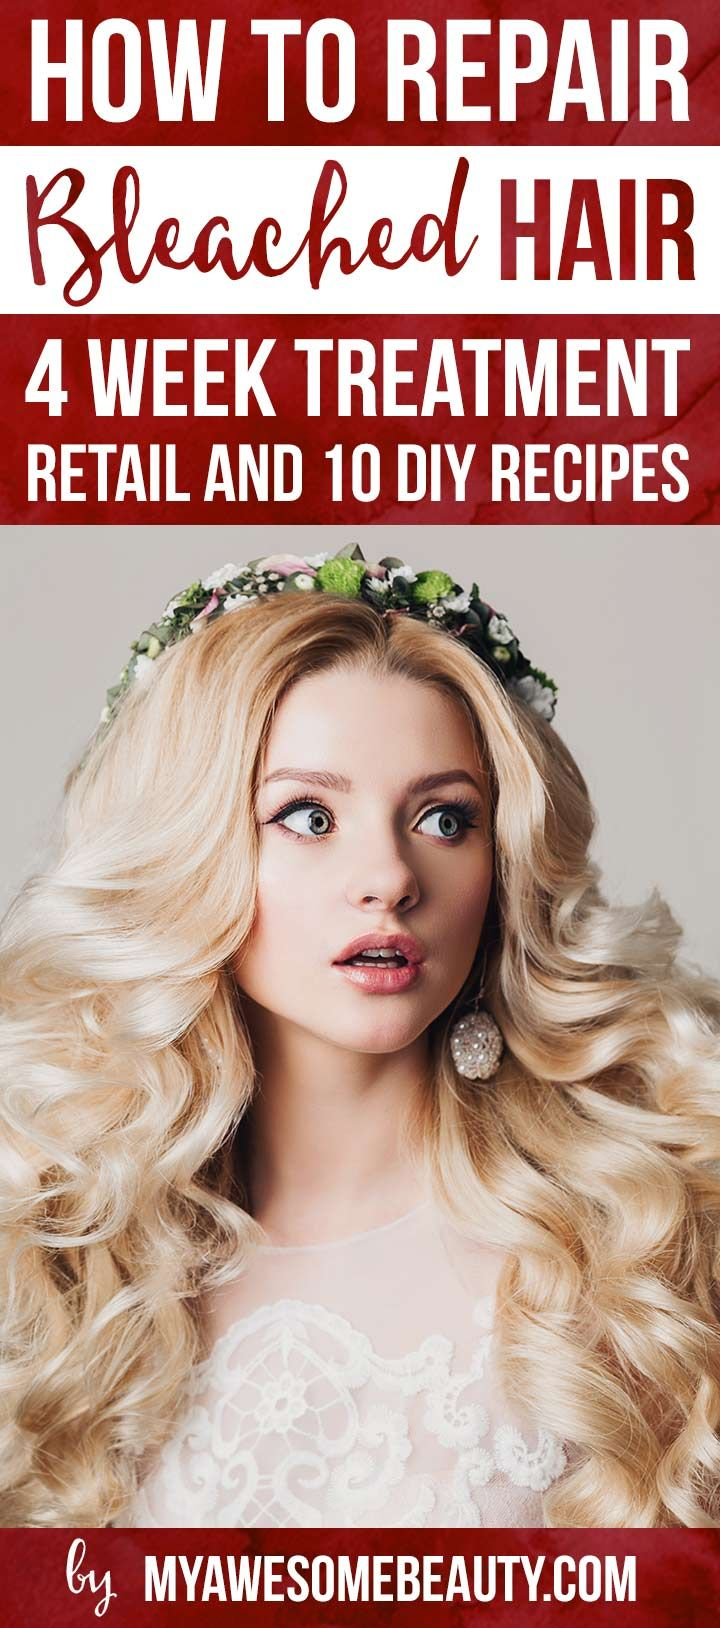 How to repair bleached hair, damaged hair or fried hair.  A complete guide from one of my favorite beauty blog ( myawesomebeauty.com)  so happy to share it.  you can check it here   http://myawesomebeauty.com/how-to-repair-bleached-hair-fast/  thanks sophie so much, please keep up:)  #bleachedhair  #damagedhair   #howtorepairbleachedhair